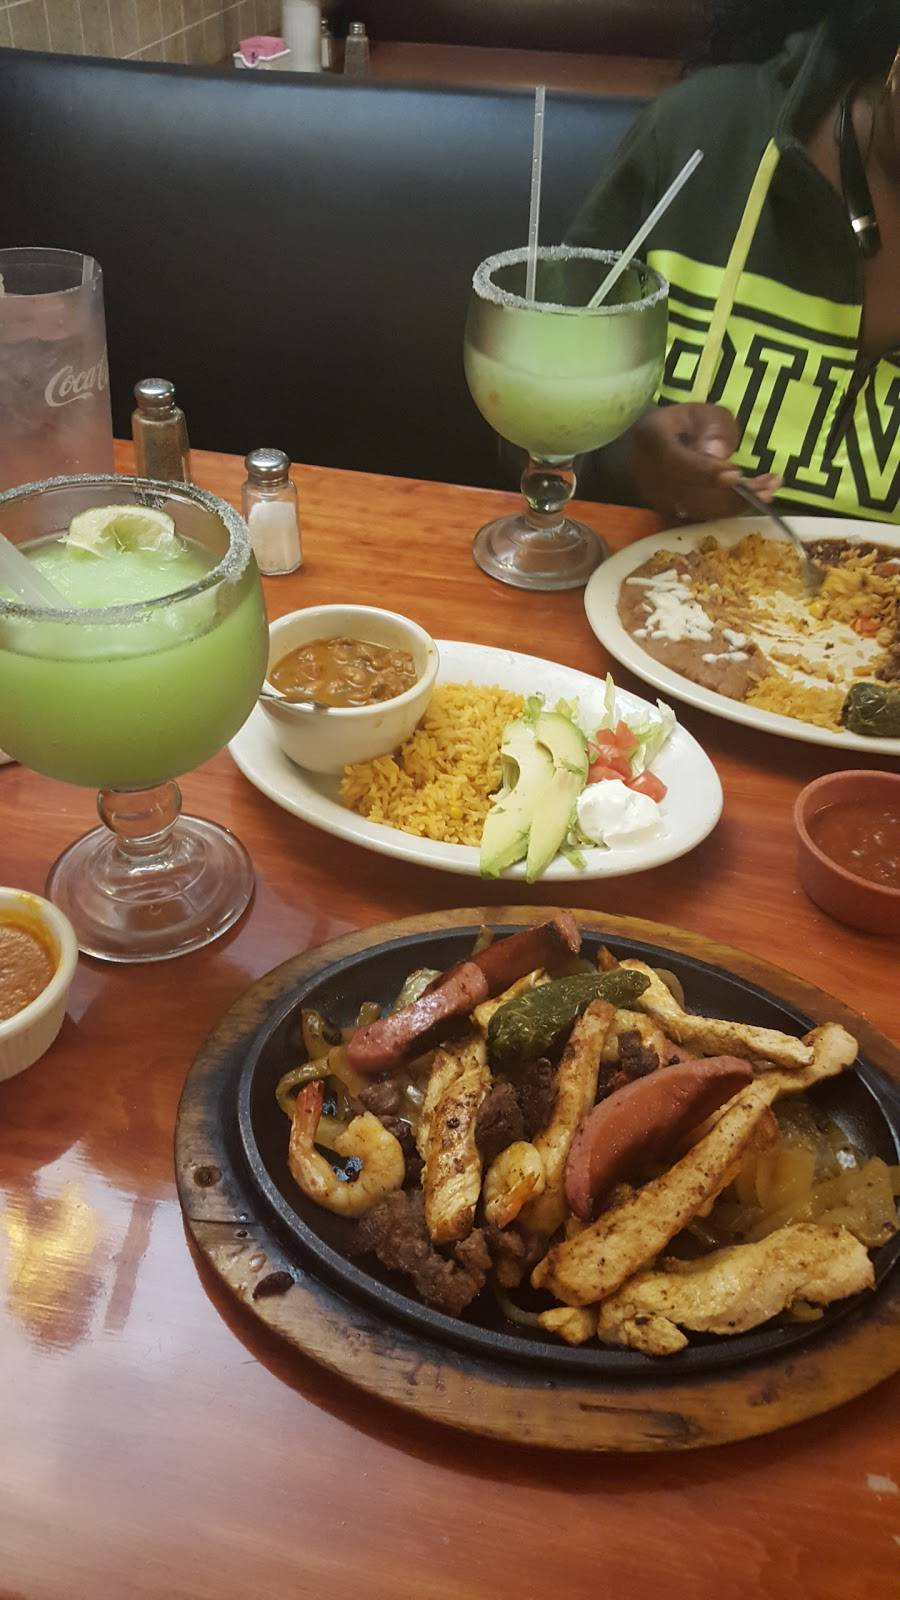 Rodriguez Mexican Grill   restaurant   8009 Lake June Rd, Dallas, TX 75217, USA   2143090212 OR +1 214-309-0212